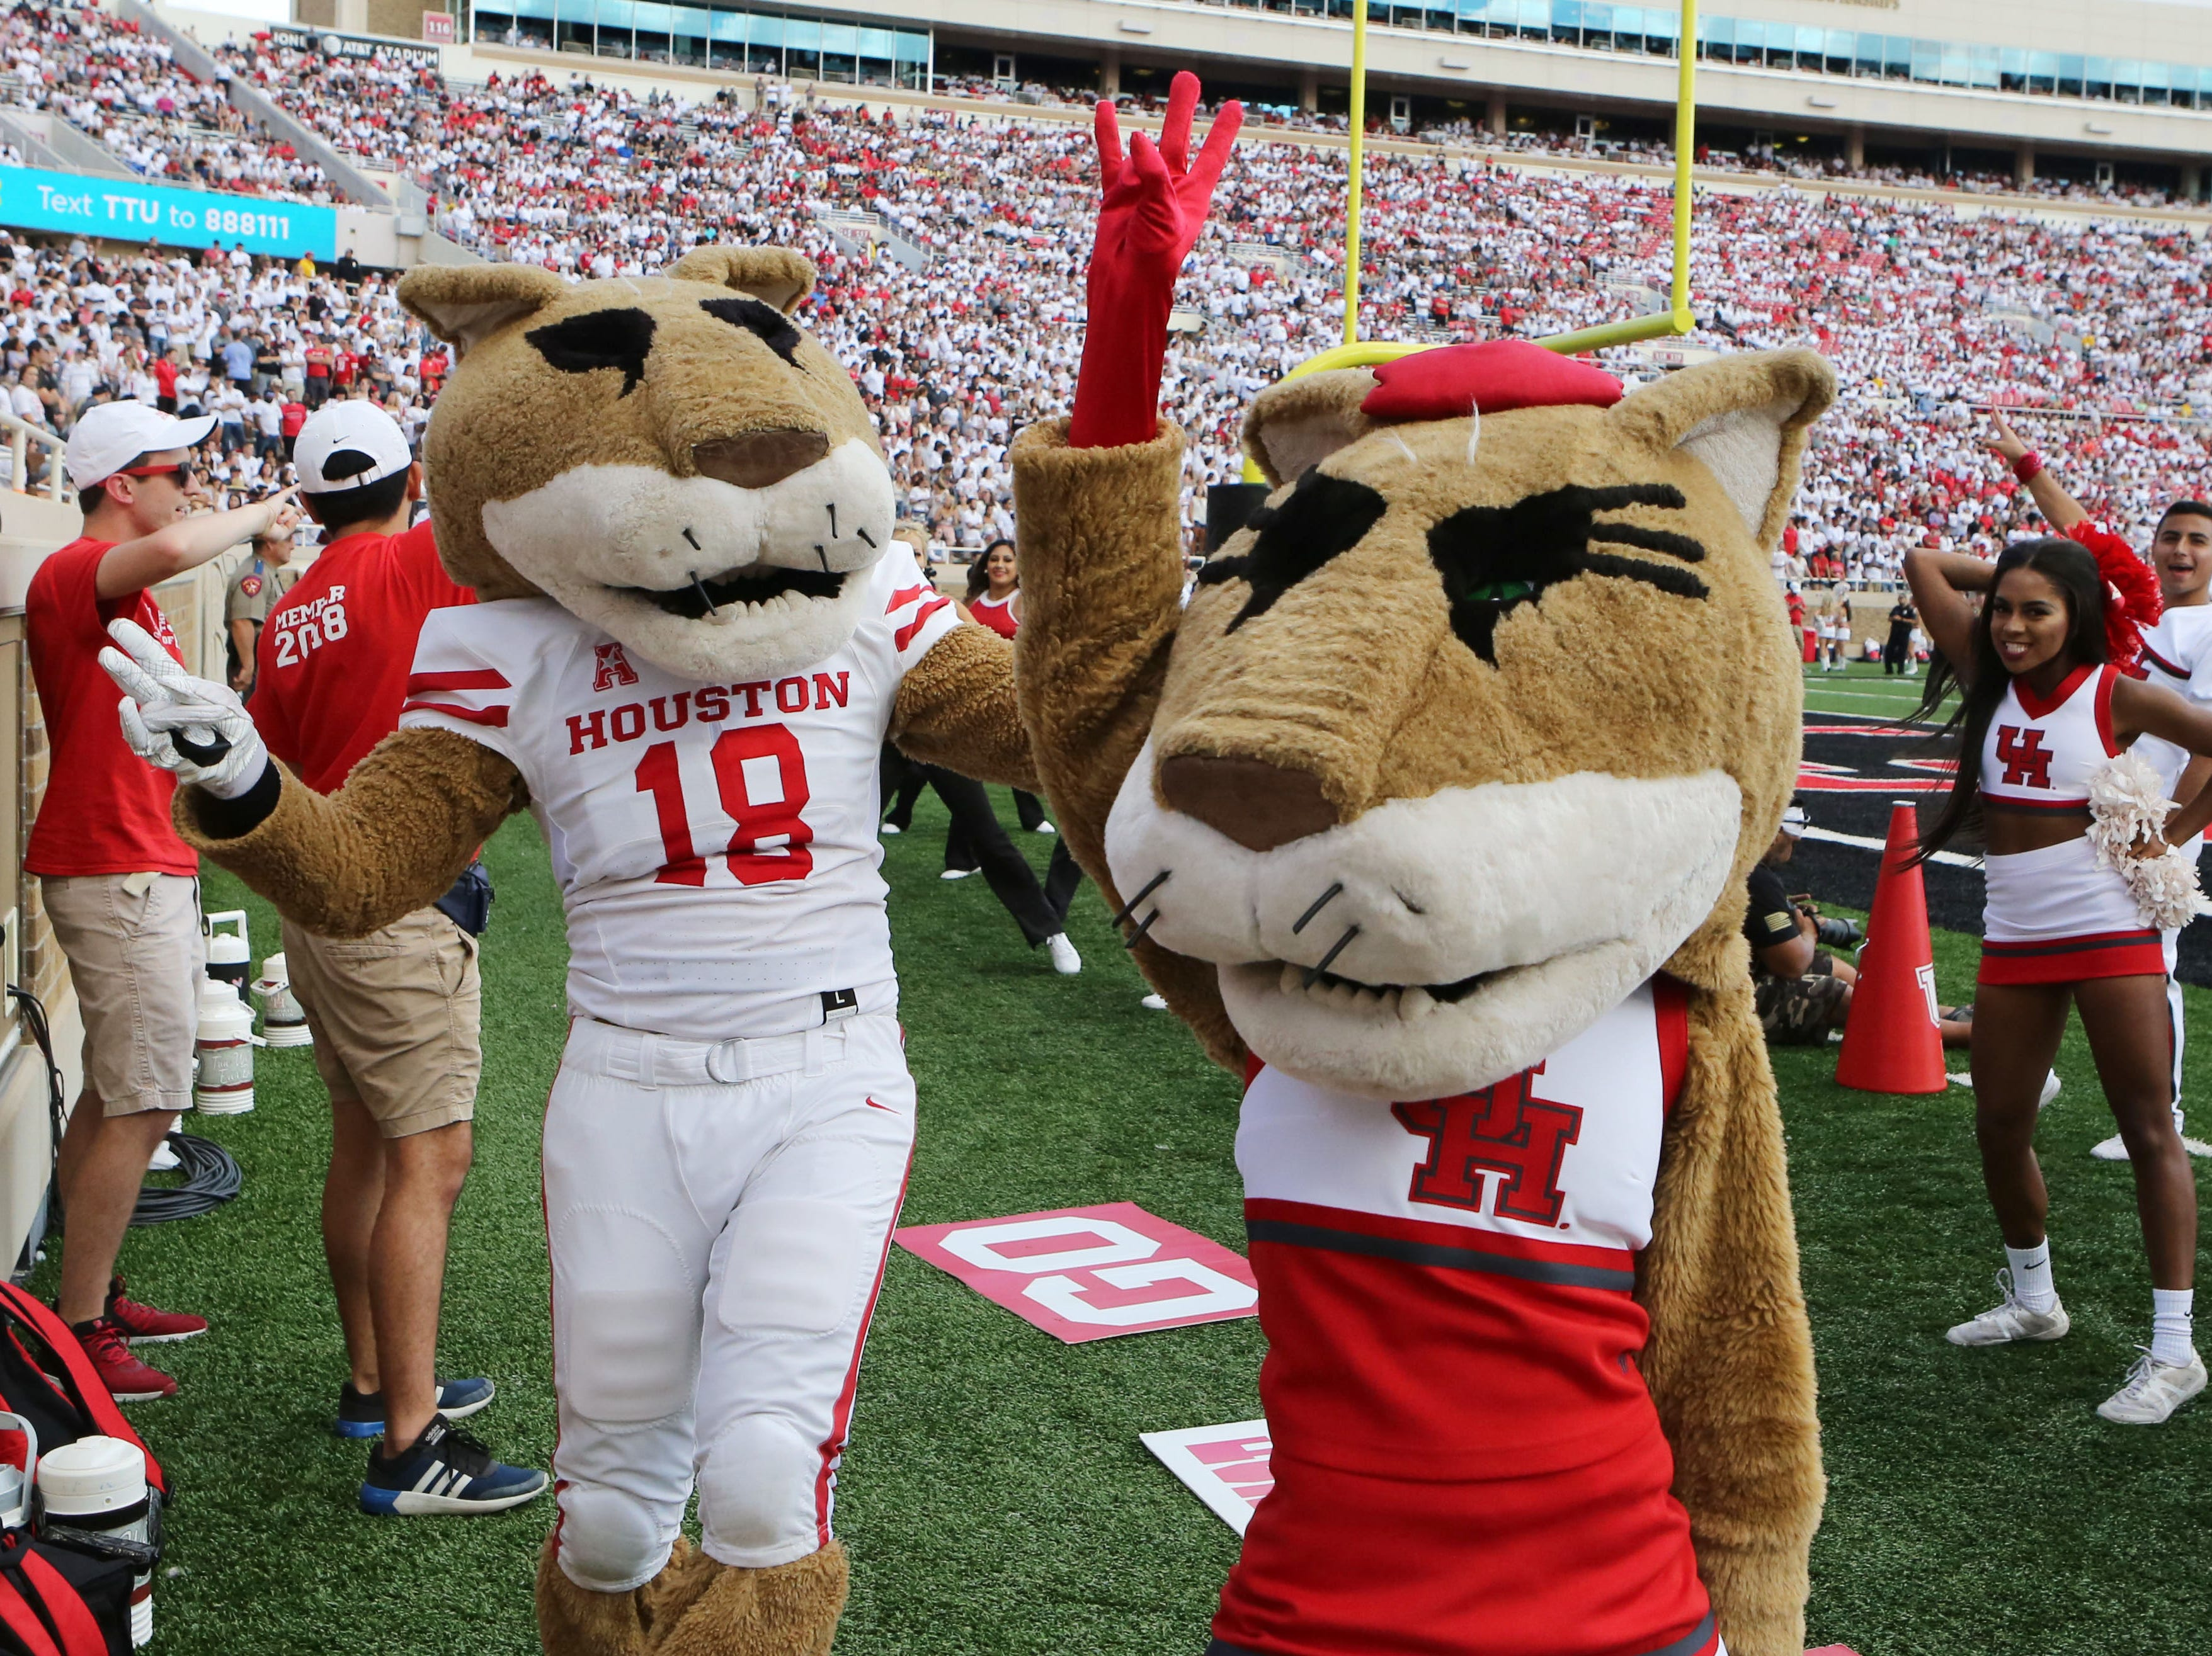 Week 3: The Houston Cougars mascots entertain the crowd during the game against the Texas Tech Red Raiders at Jones AT&T Stadium.